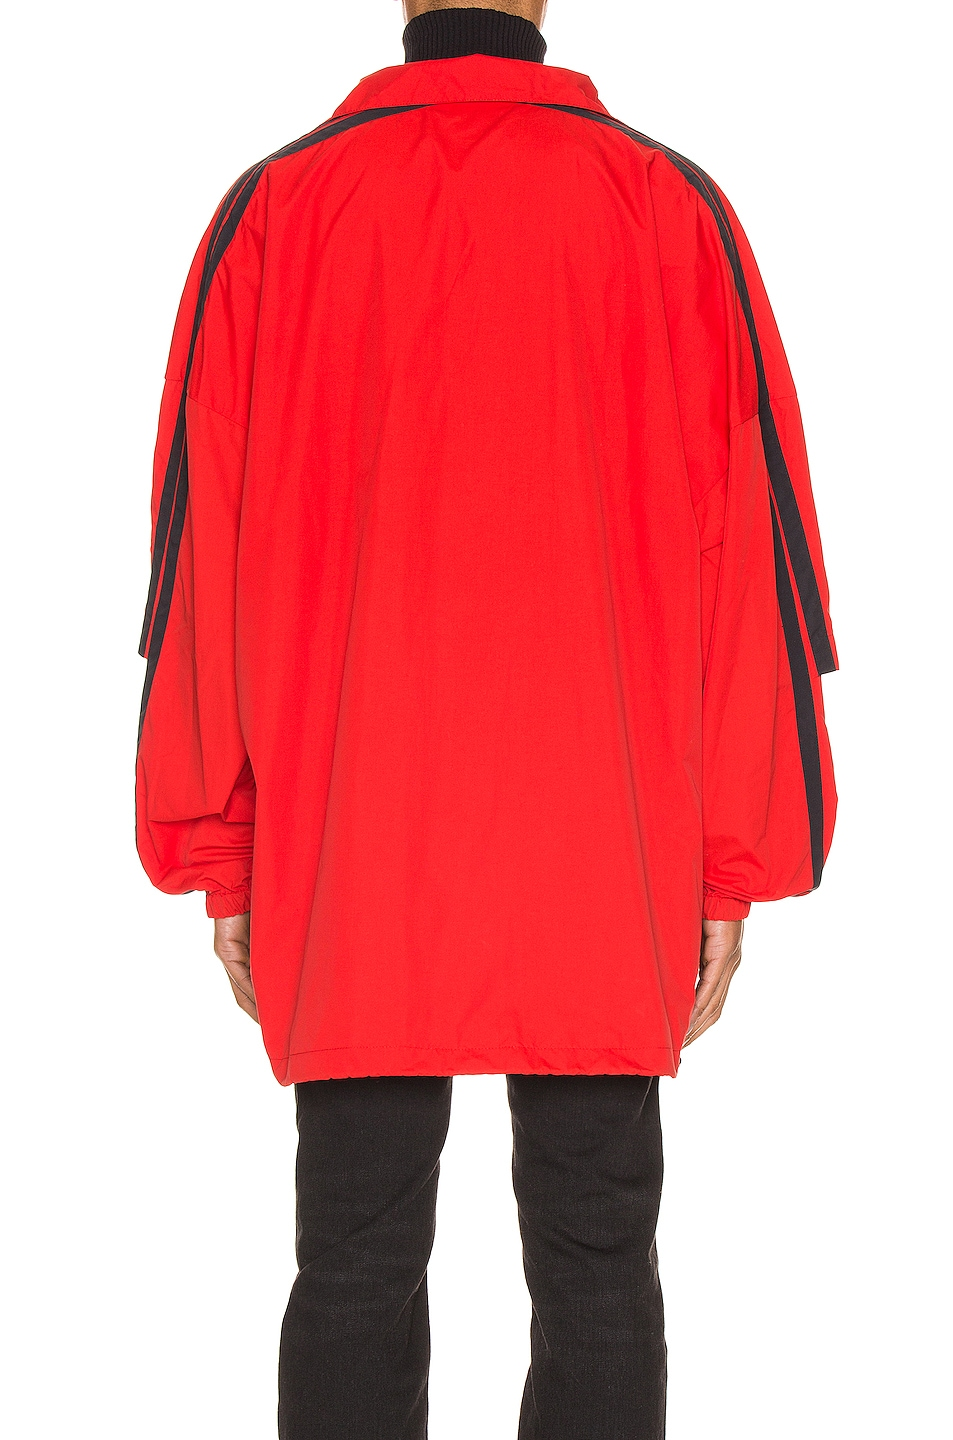 Image 5 of Balenciaga Double Sleeve Zip Up in Masai Red